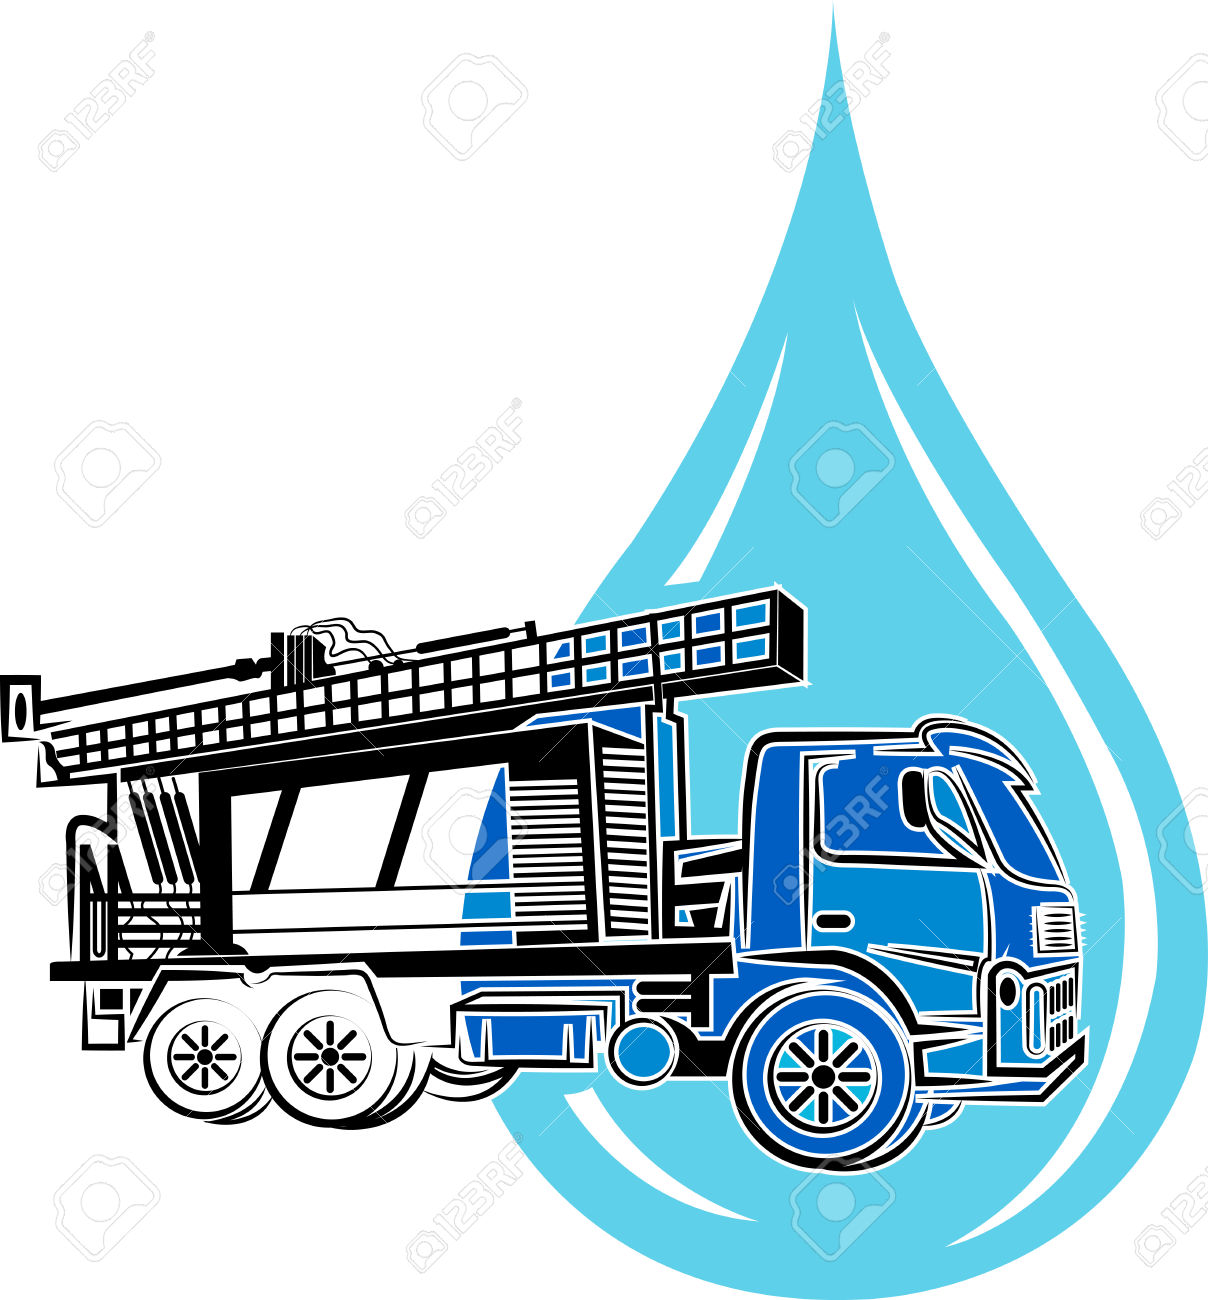 Water Well Drilling Truck Clipart.